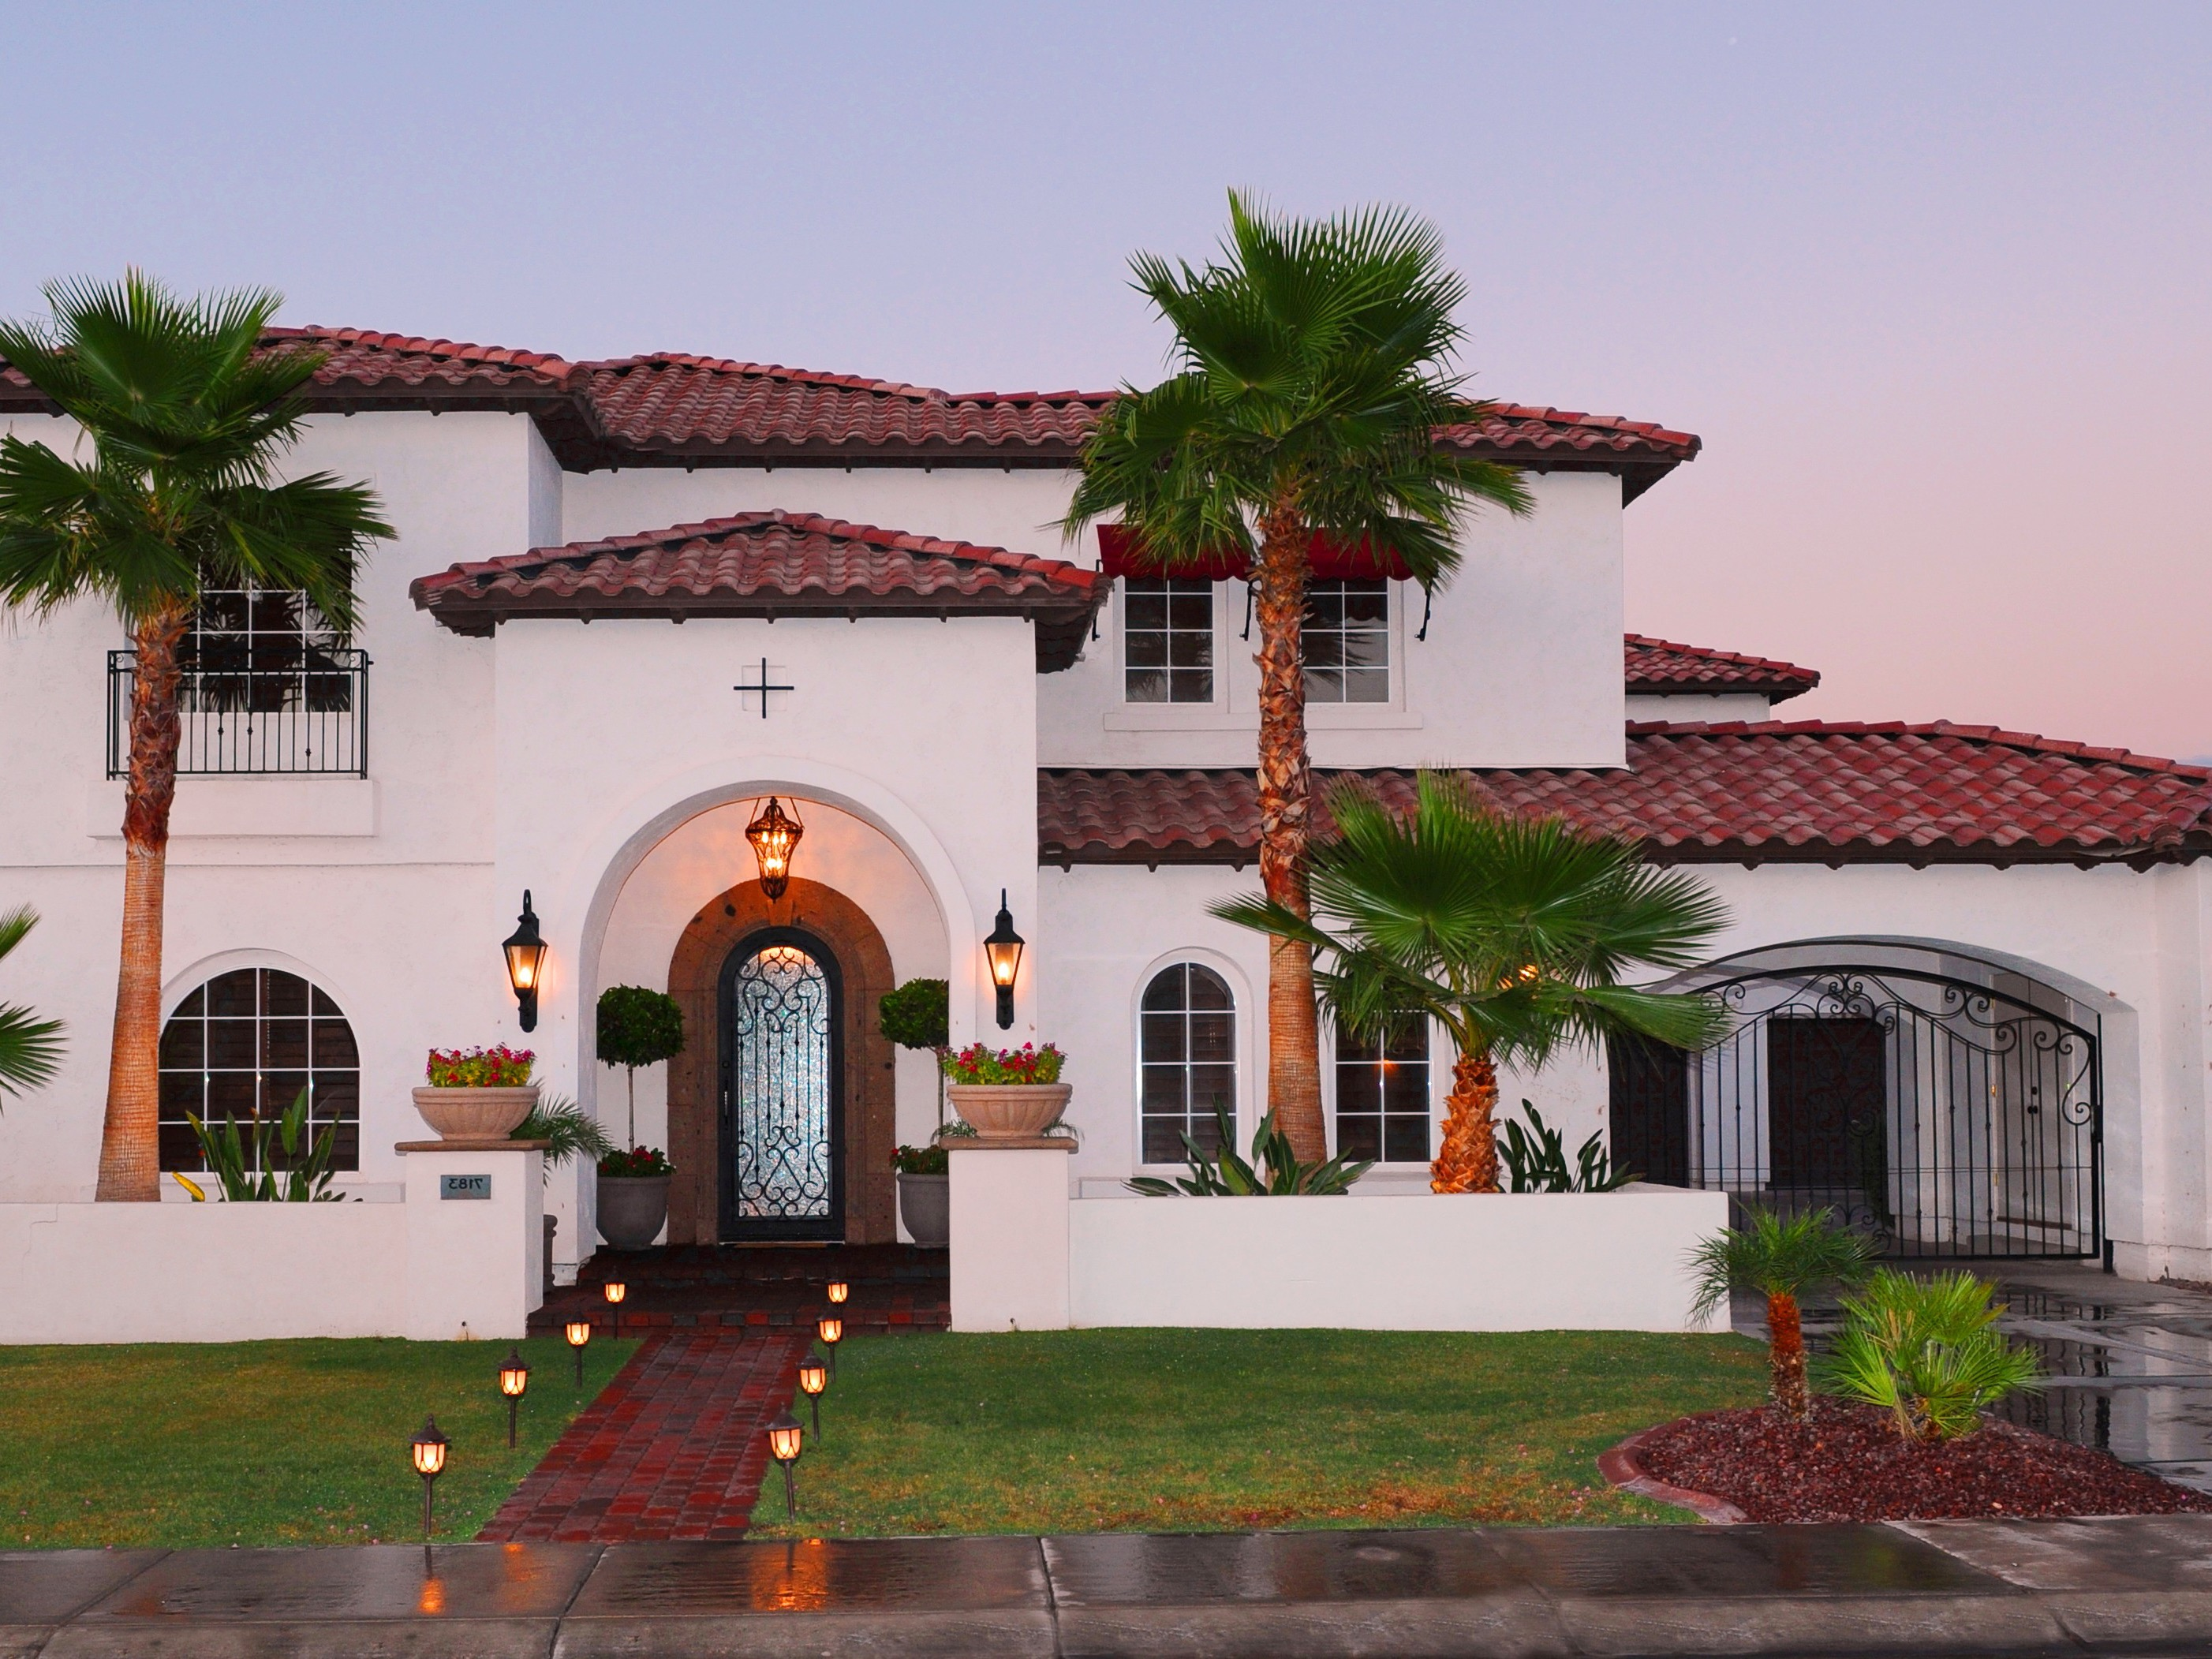 Mediterranean Exterior Of Traditional Spanish Style Home With Brick Walkway, Arched Entryway, Red Tile Roof And Landscape Lighting (Image 17 of 30)